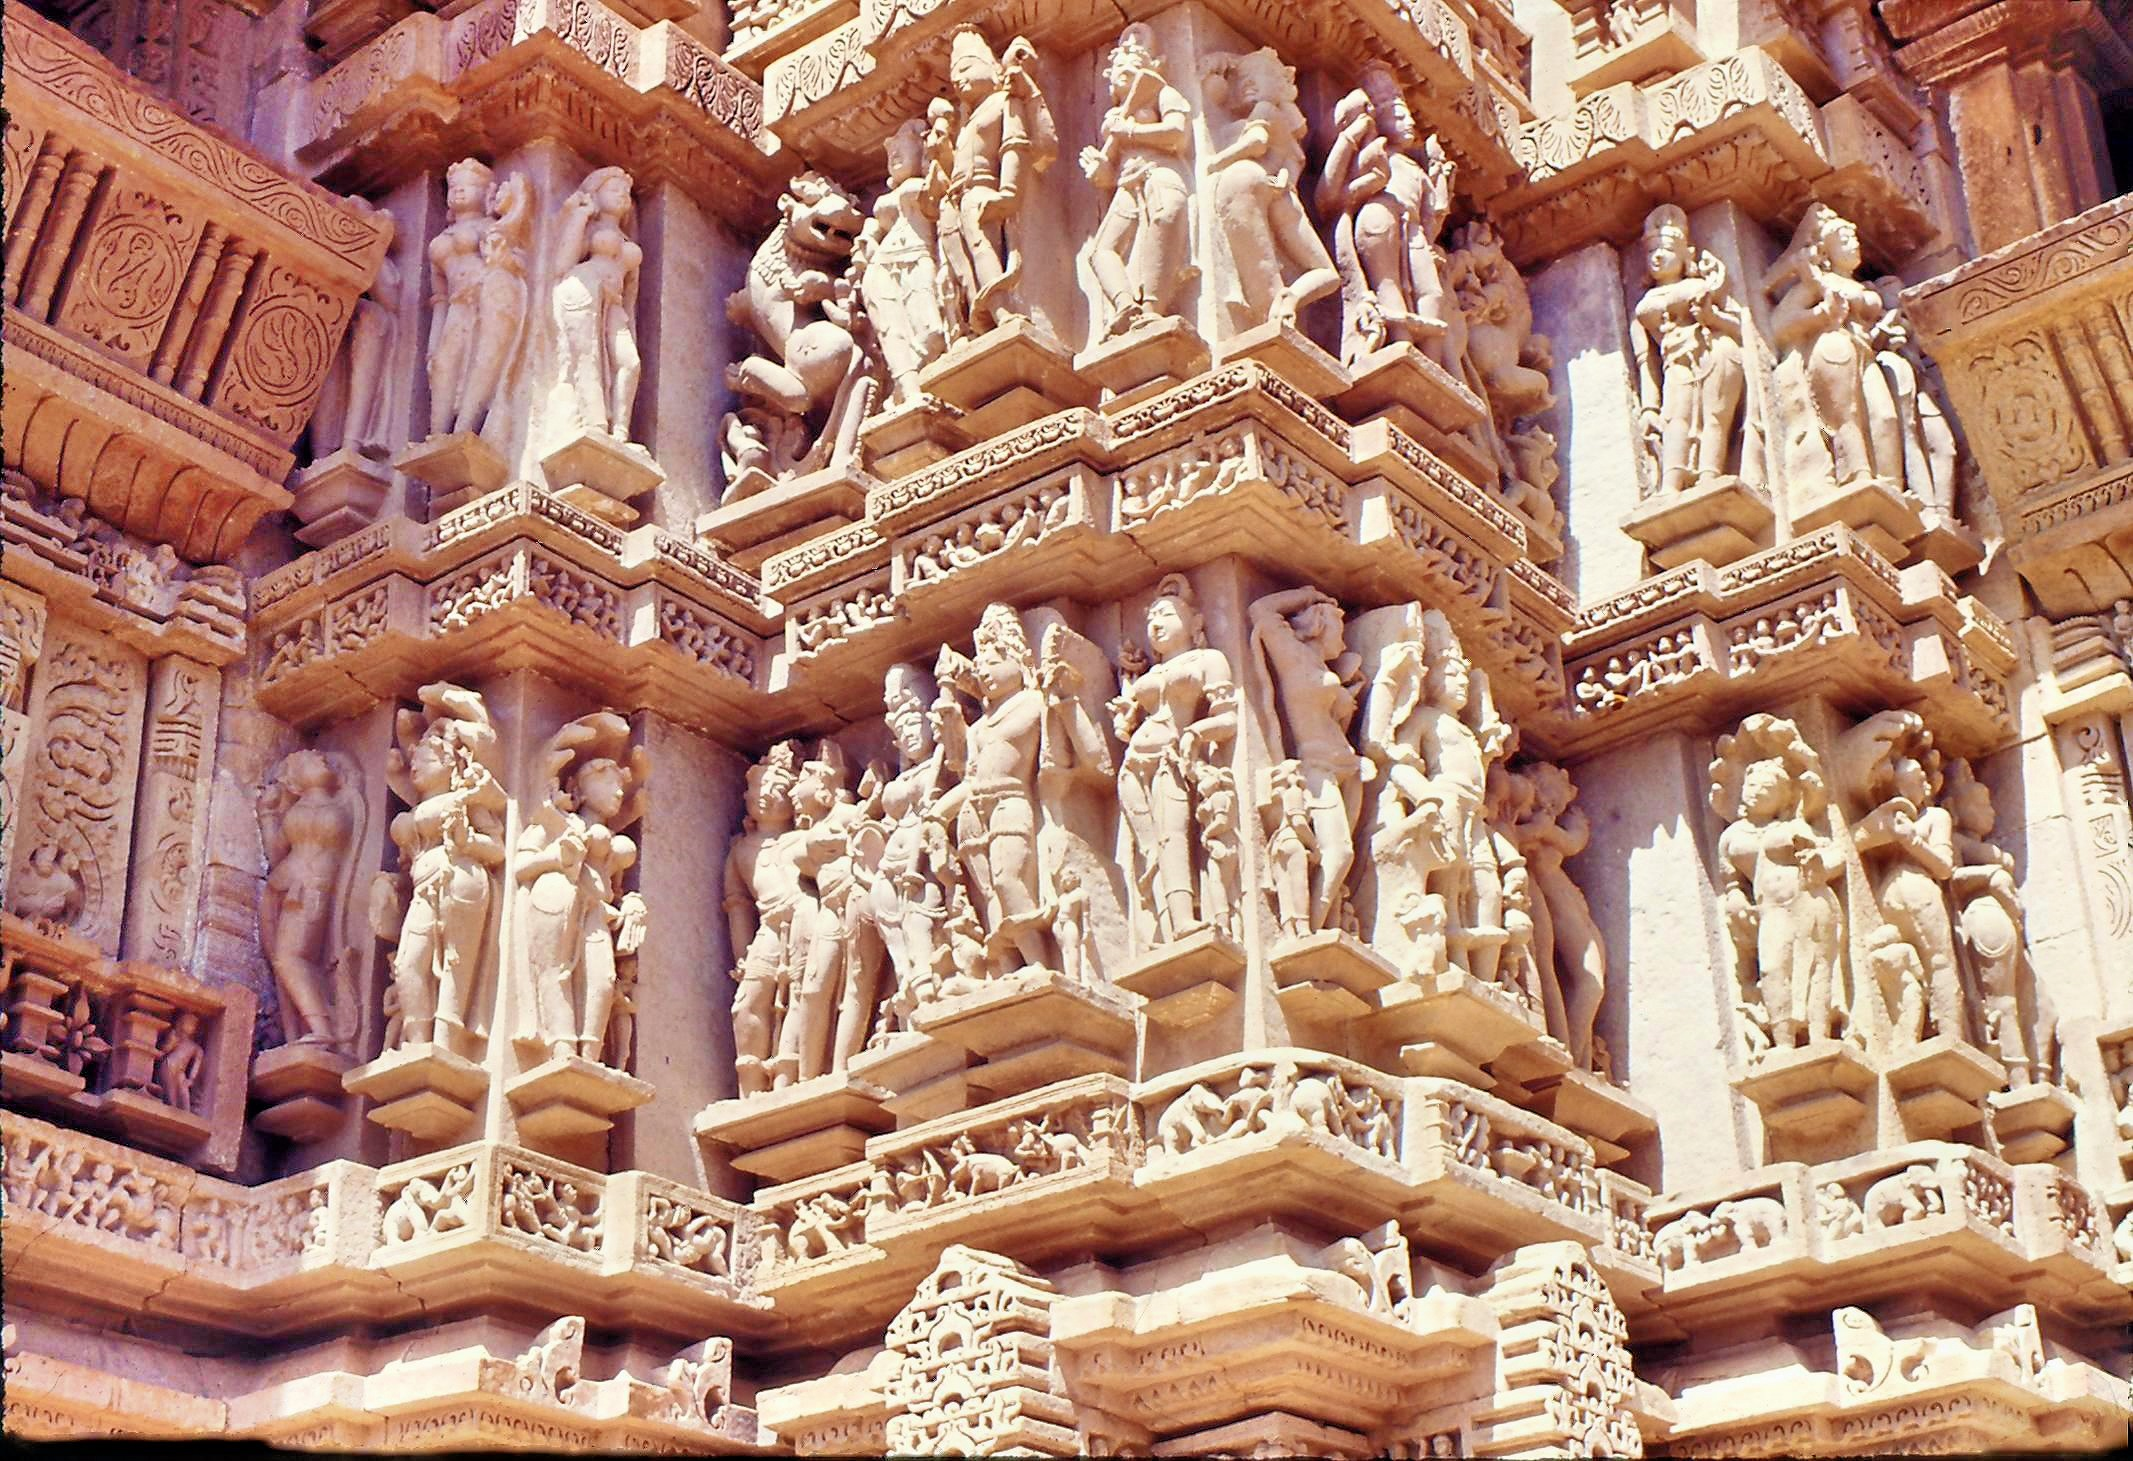 This should be 25-Khajuraho-12.jpeg.  Is it missing?